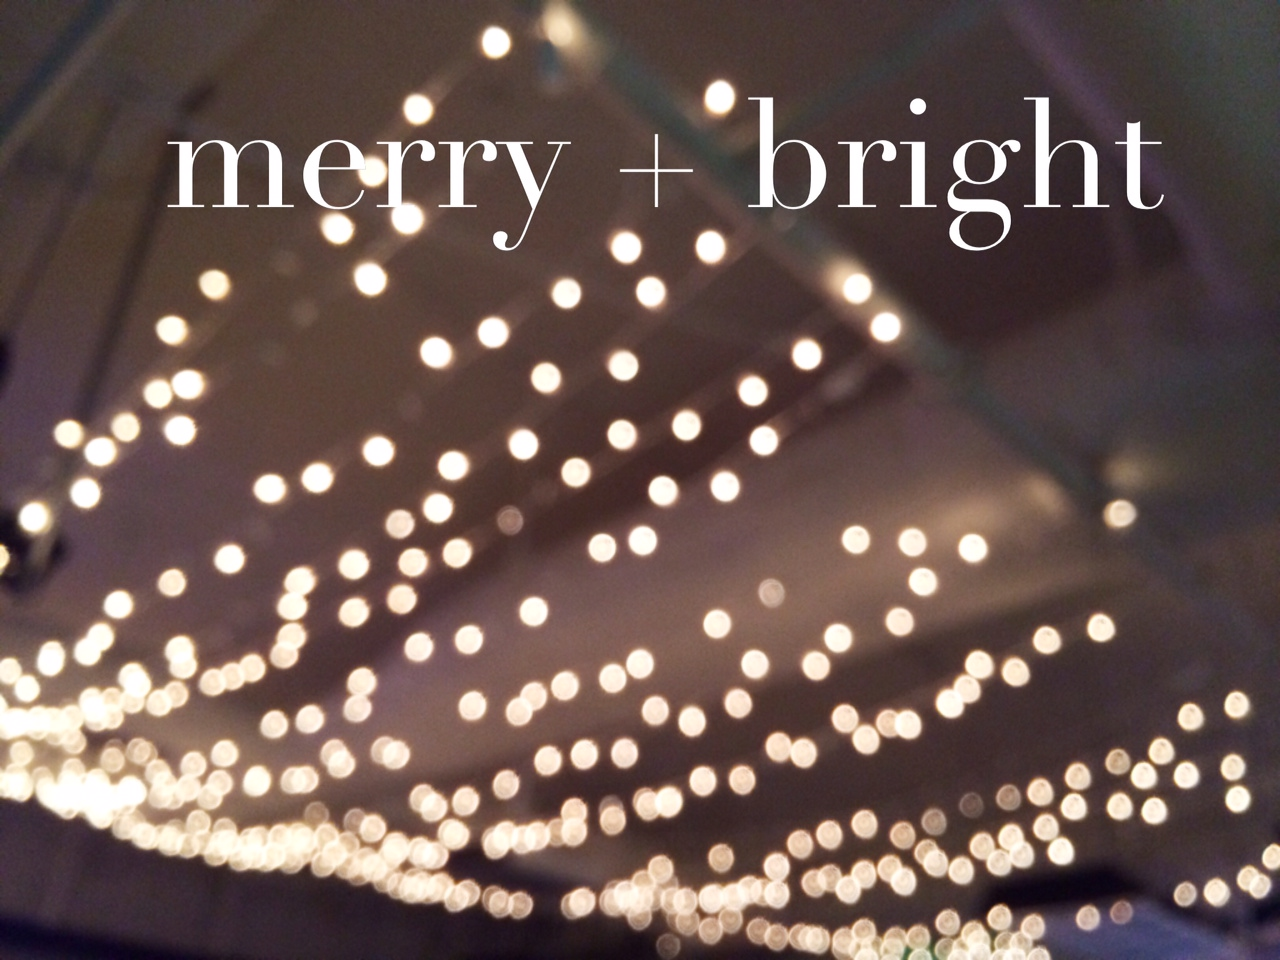 Magnificent Bright Svg Pearls May Your Days Be Merry May Your Days Be Merry May All Your Es Be Merry Dc Girl Bright Photo Card May Your Days Be Merry baby May Your Days Be Merry And Bright